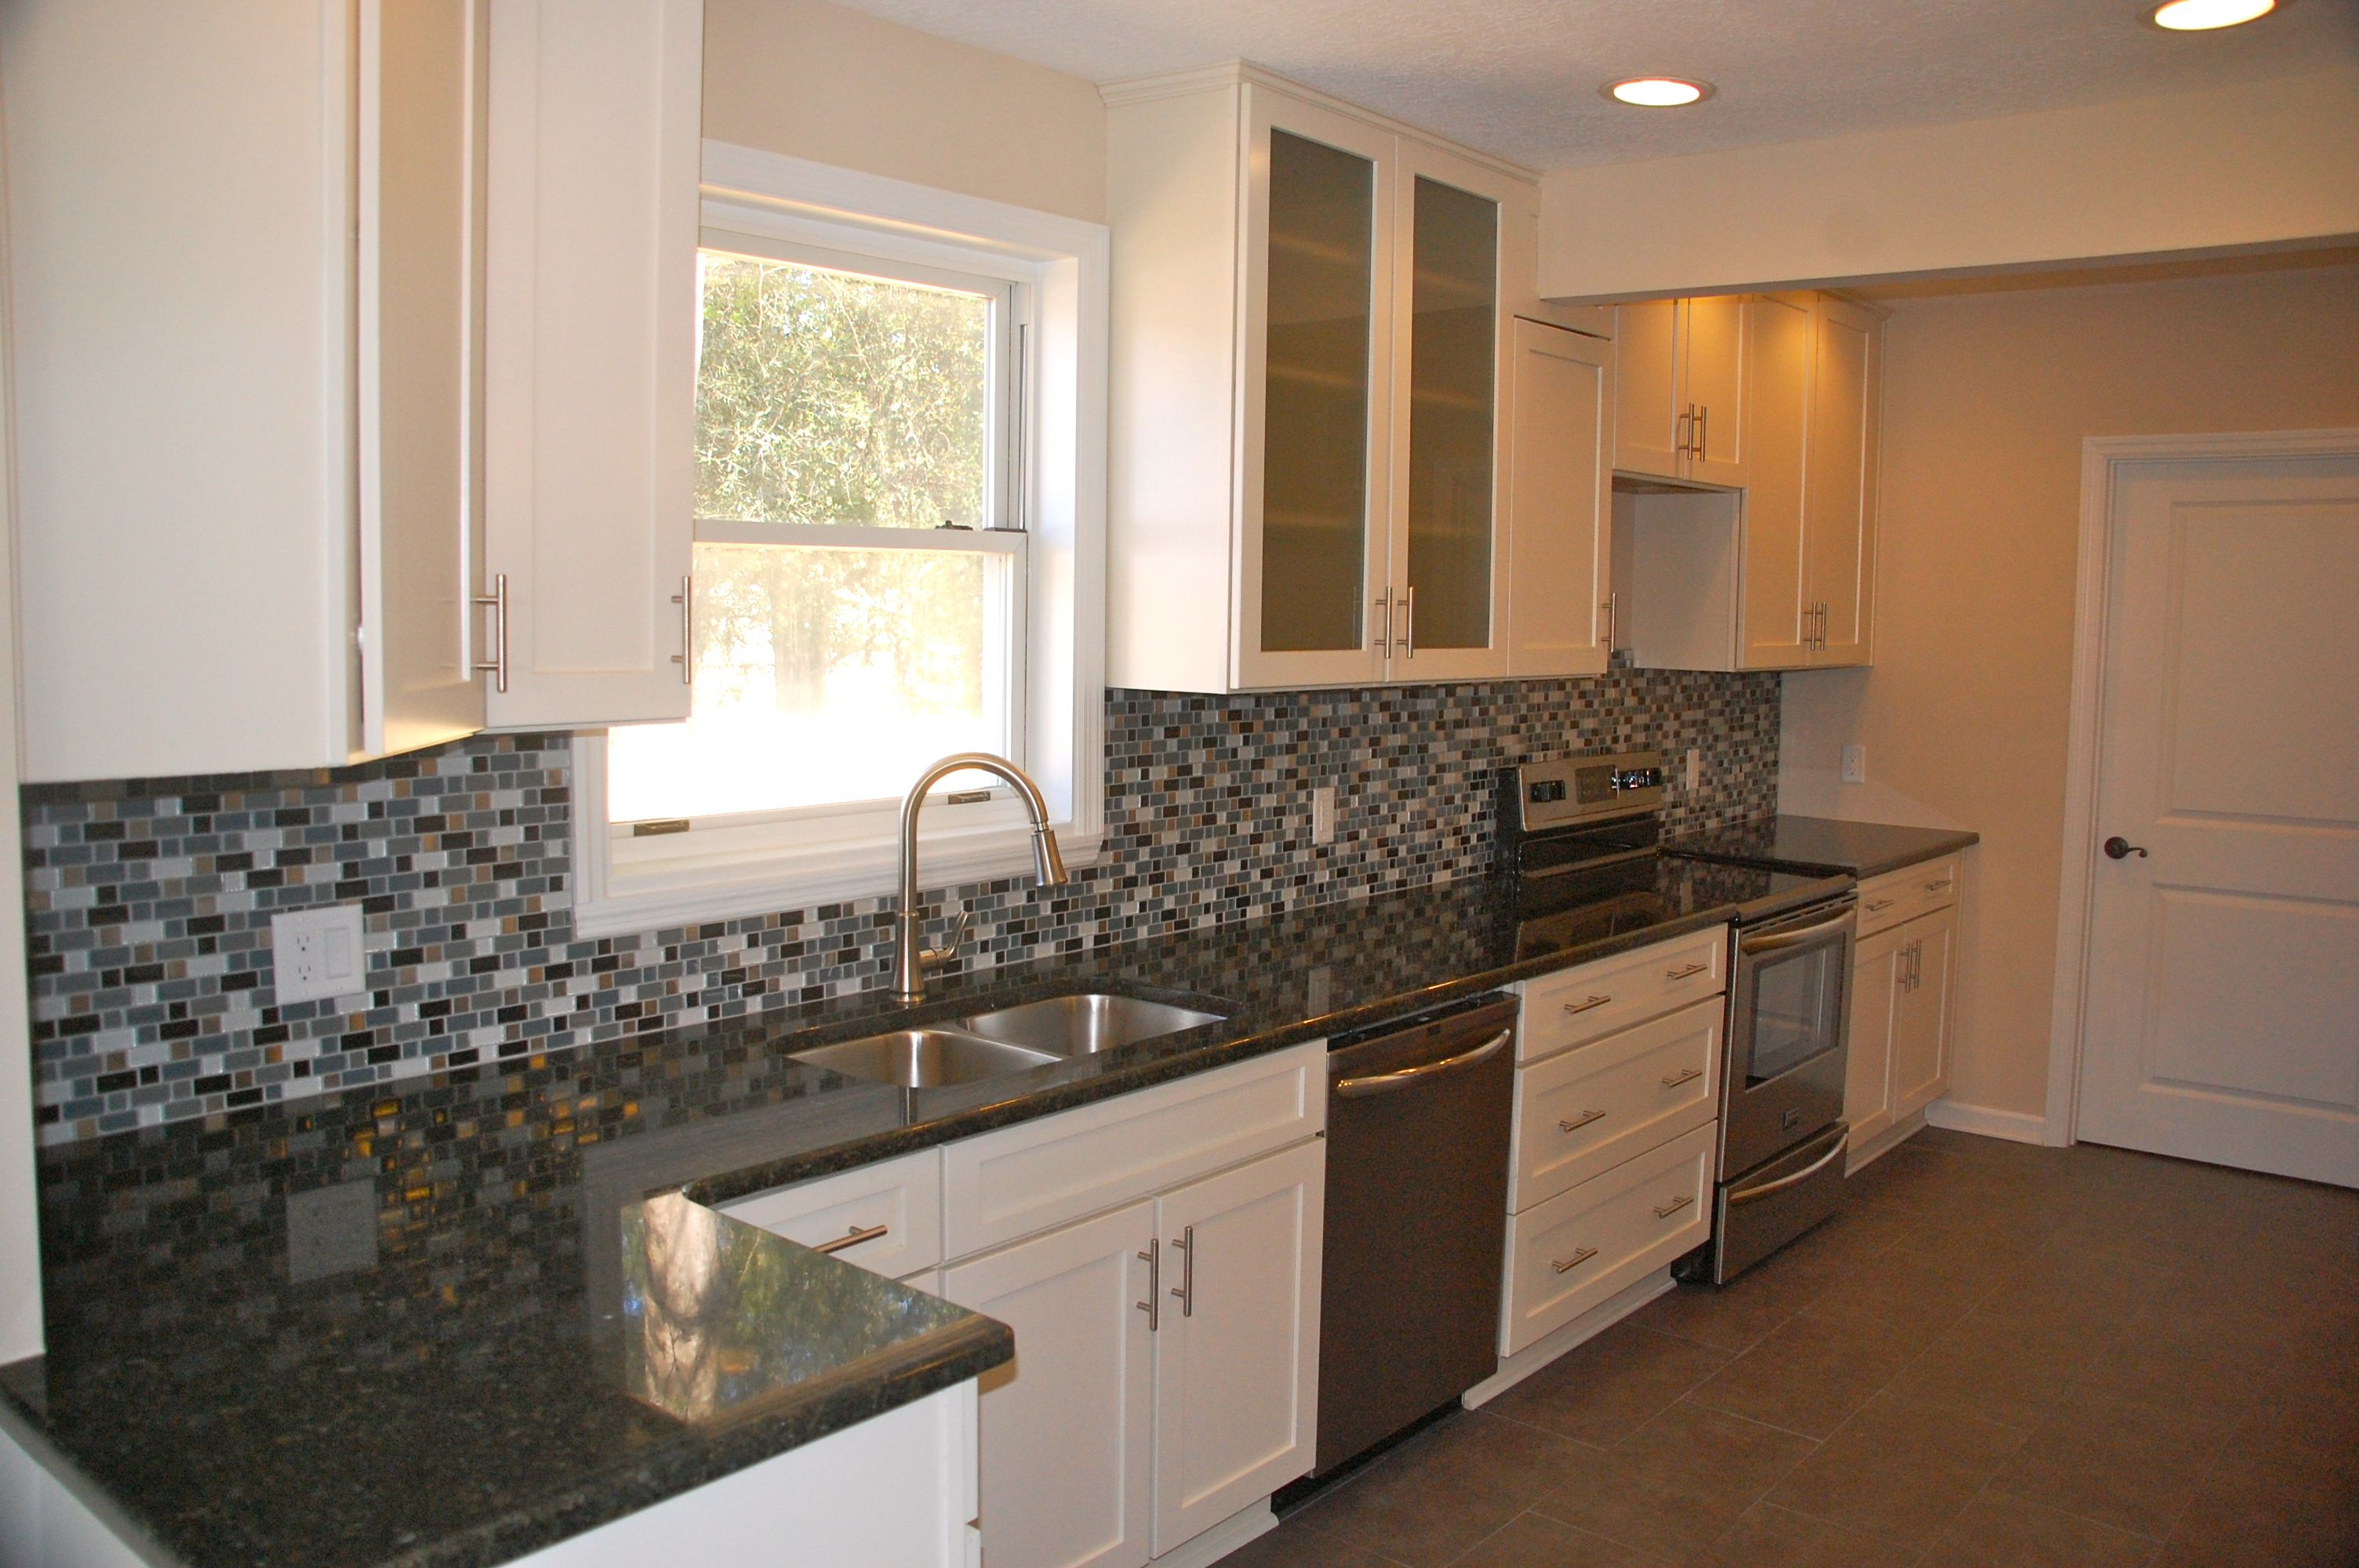 Best Kitchen Remodel In 1940 S Era Avondale Bungalow White 400 x 300